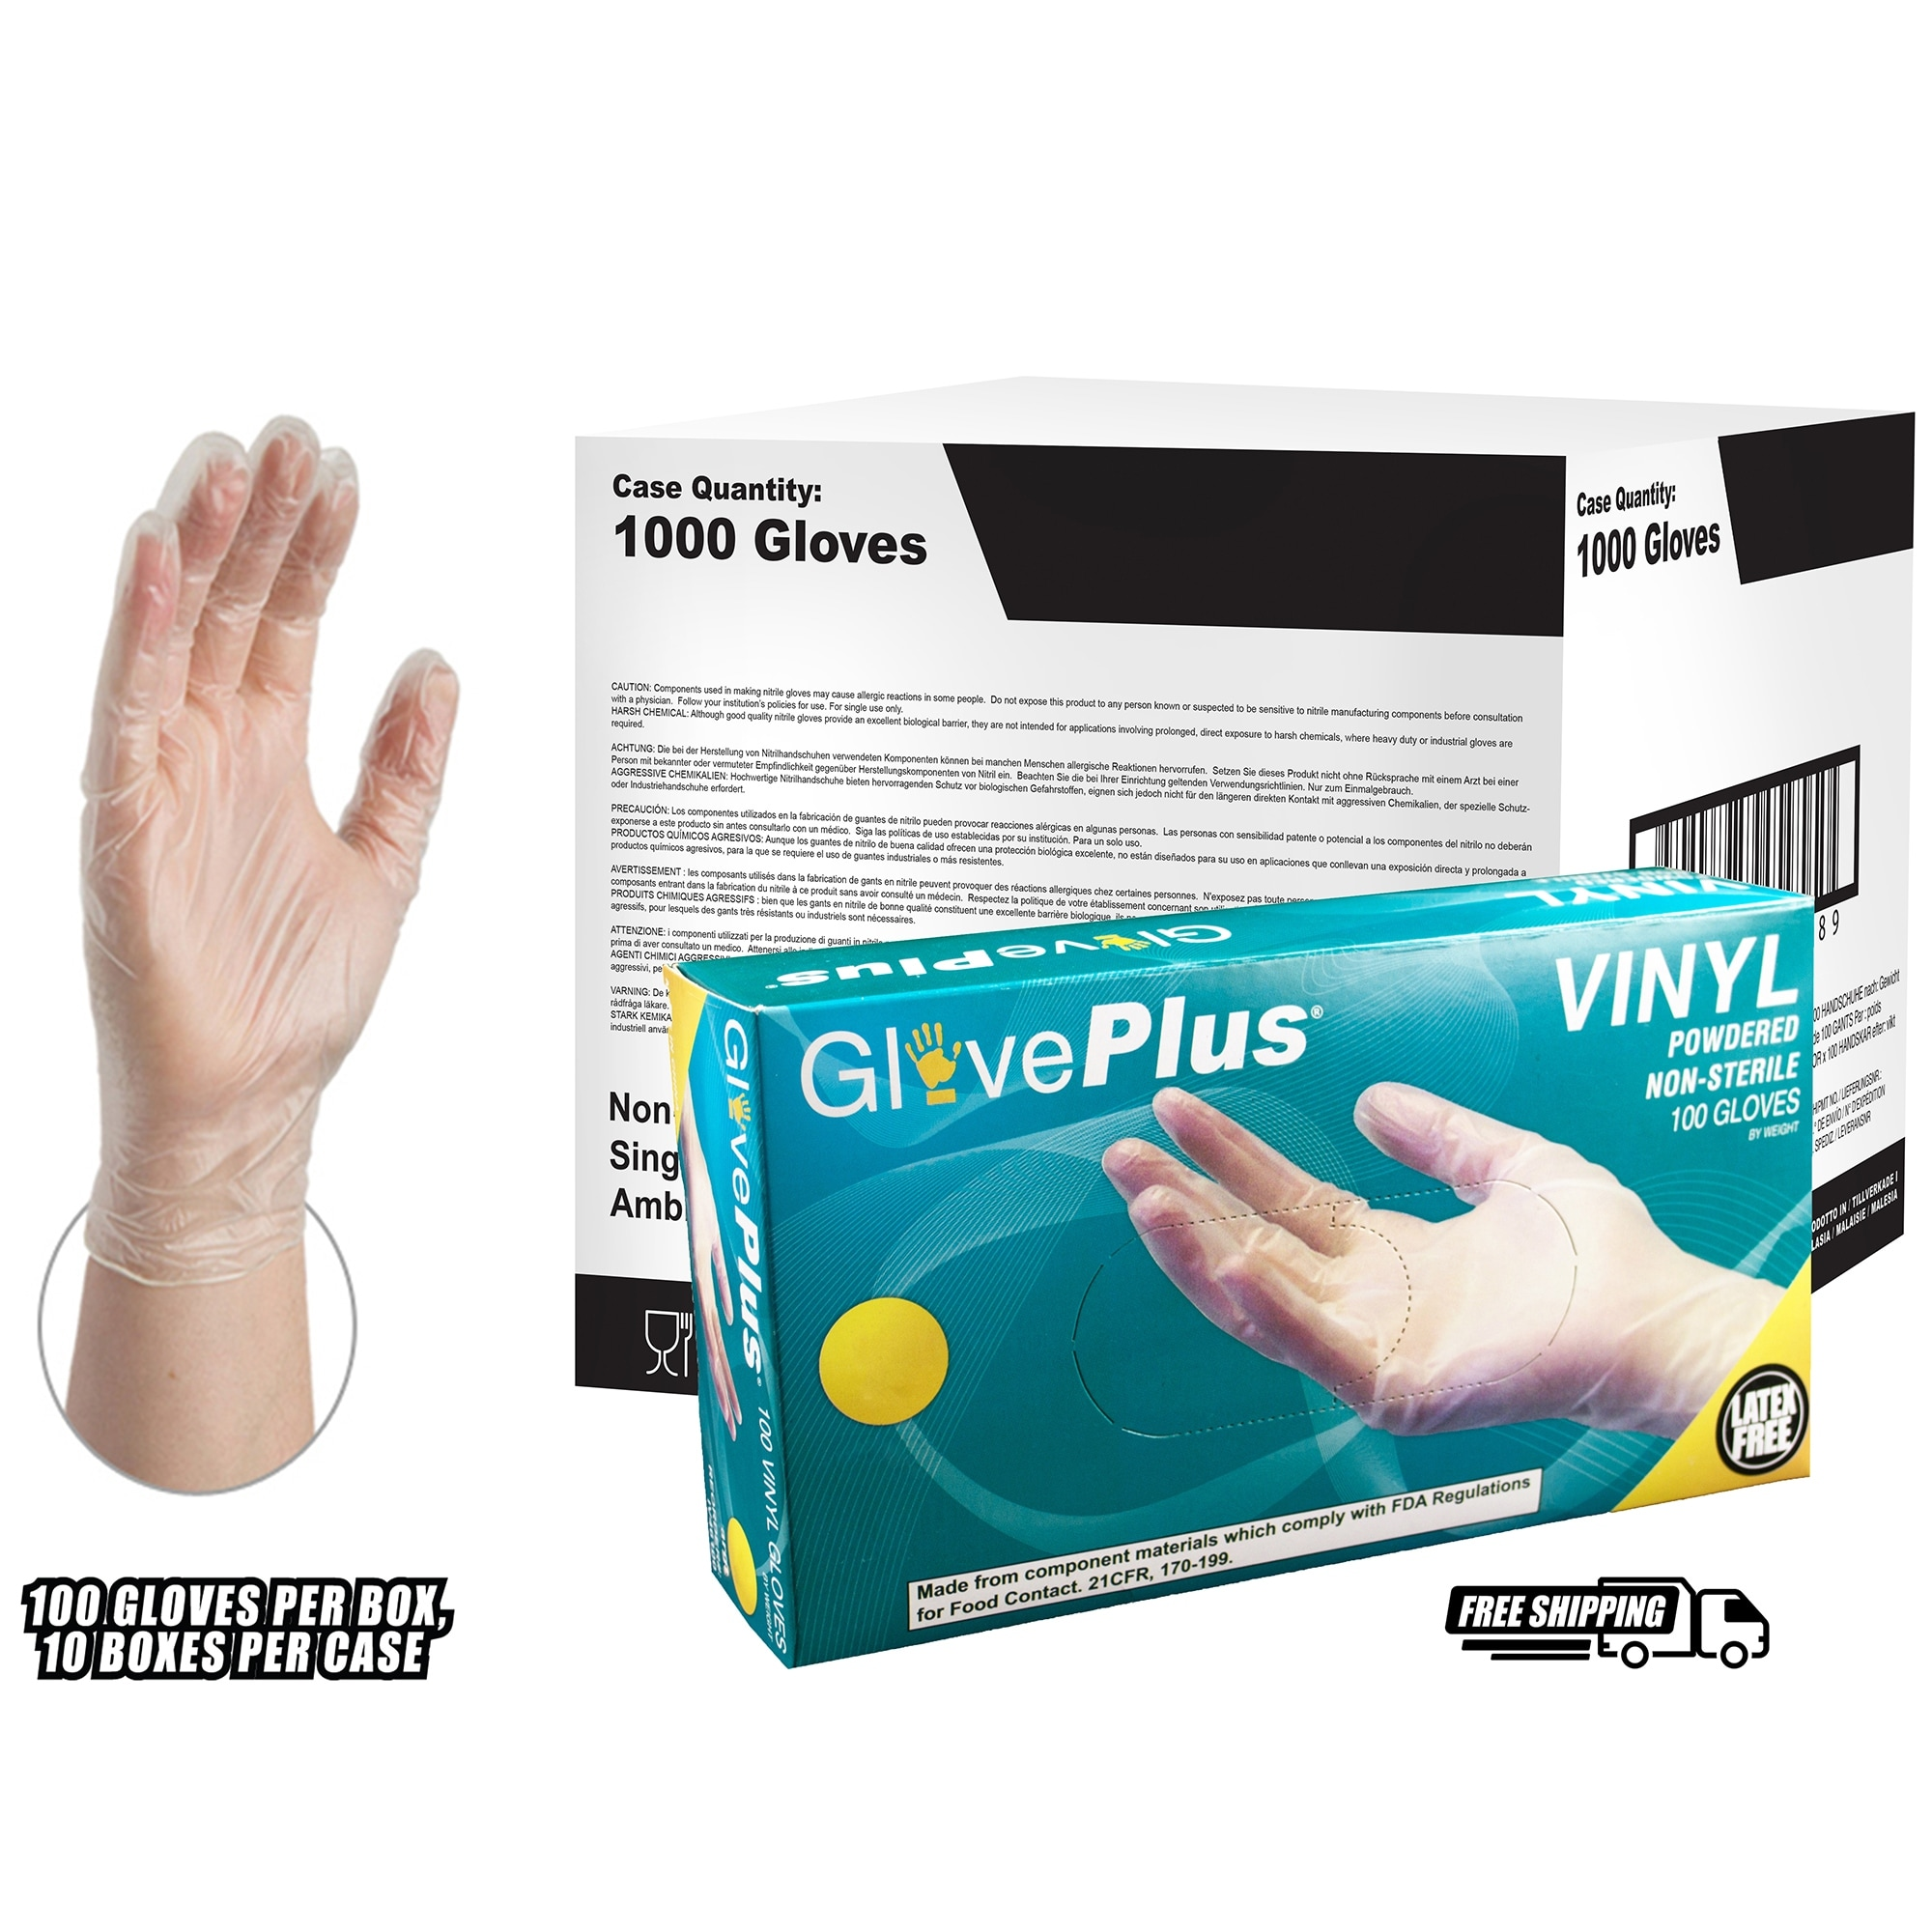 Shop Gloveplus Iv Clear Vinyl Industrial Powdered Disposable Gloves Case Of 1000 By Ammex Overstock 15434237